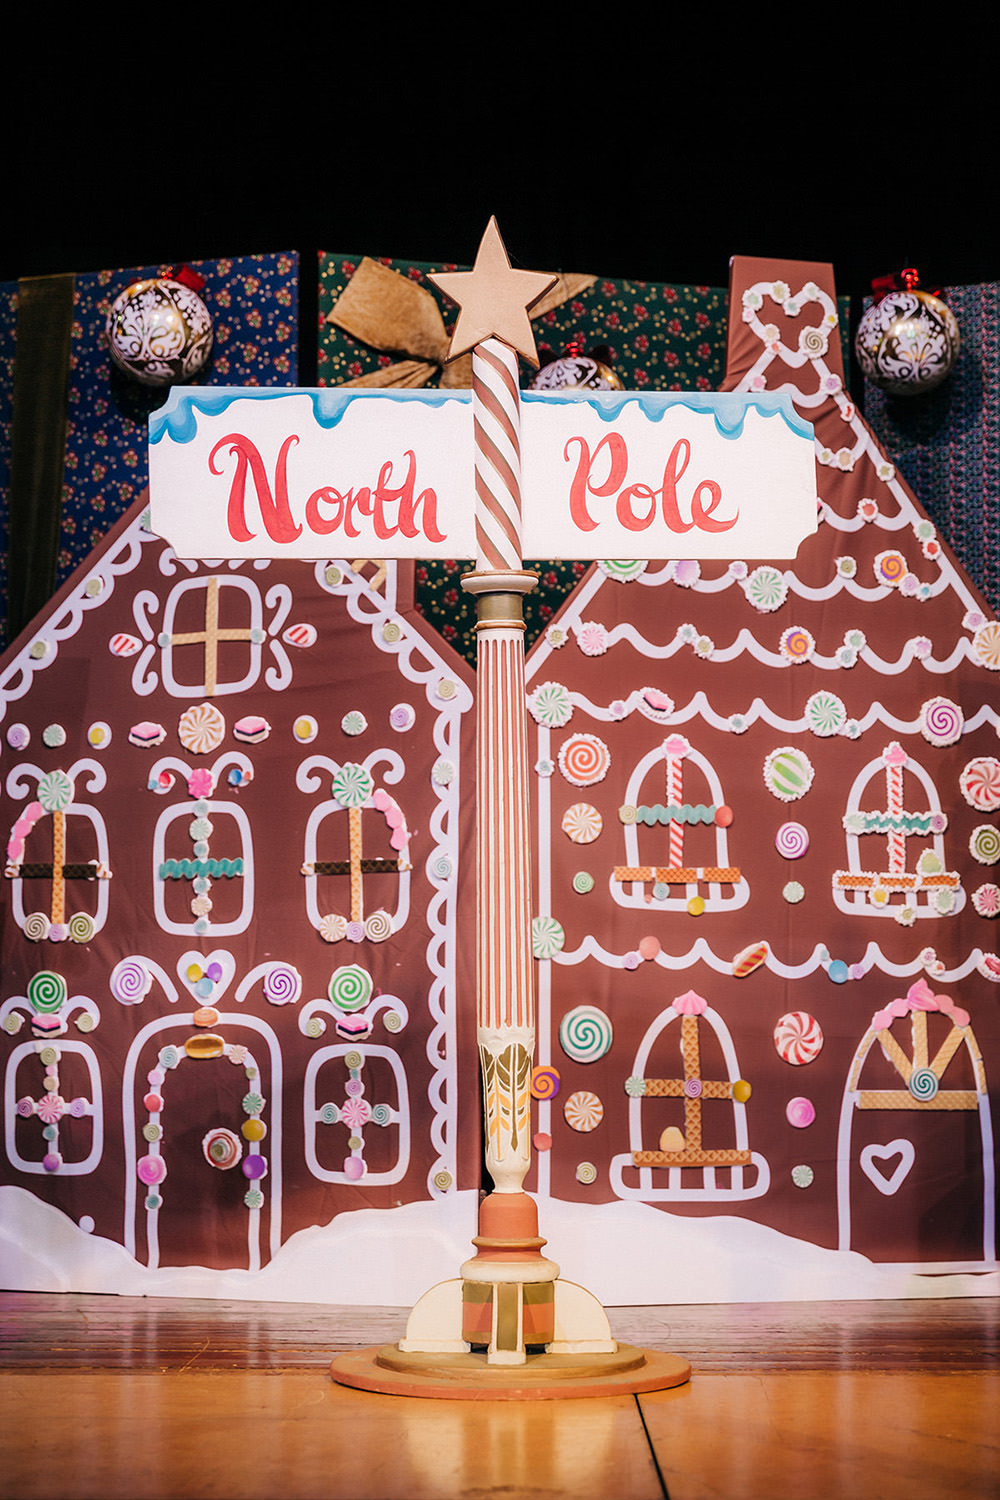 North pole Sign! Event props, School events, North pole sign